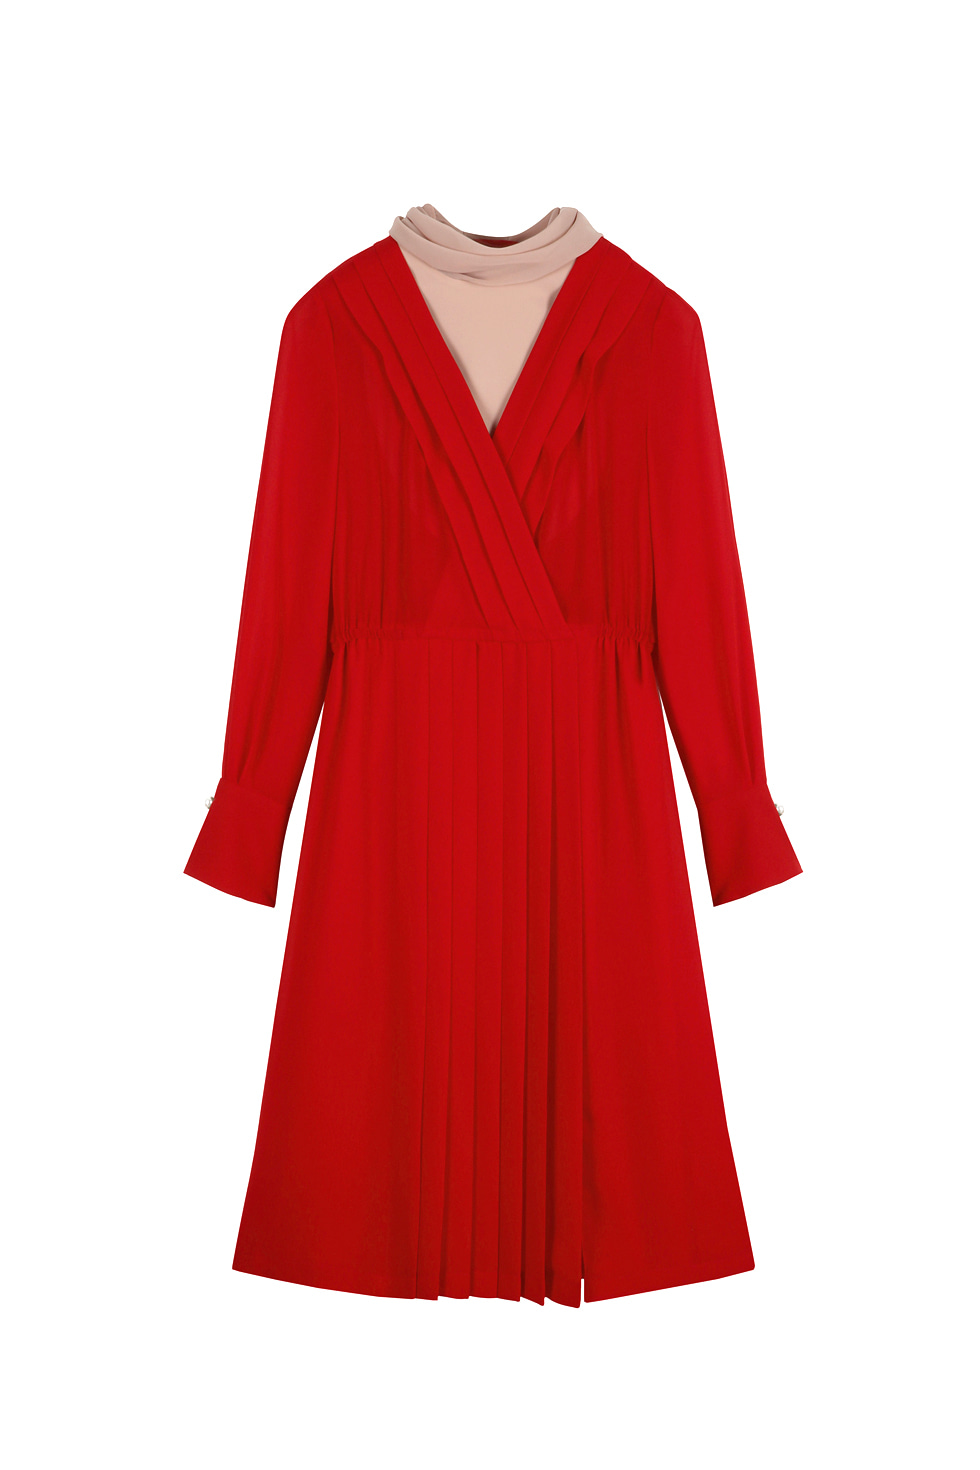 SCARF PLEATS DRESS - RED